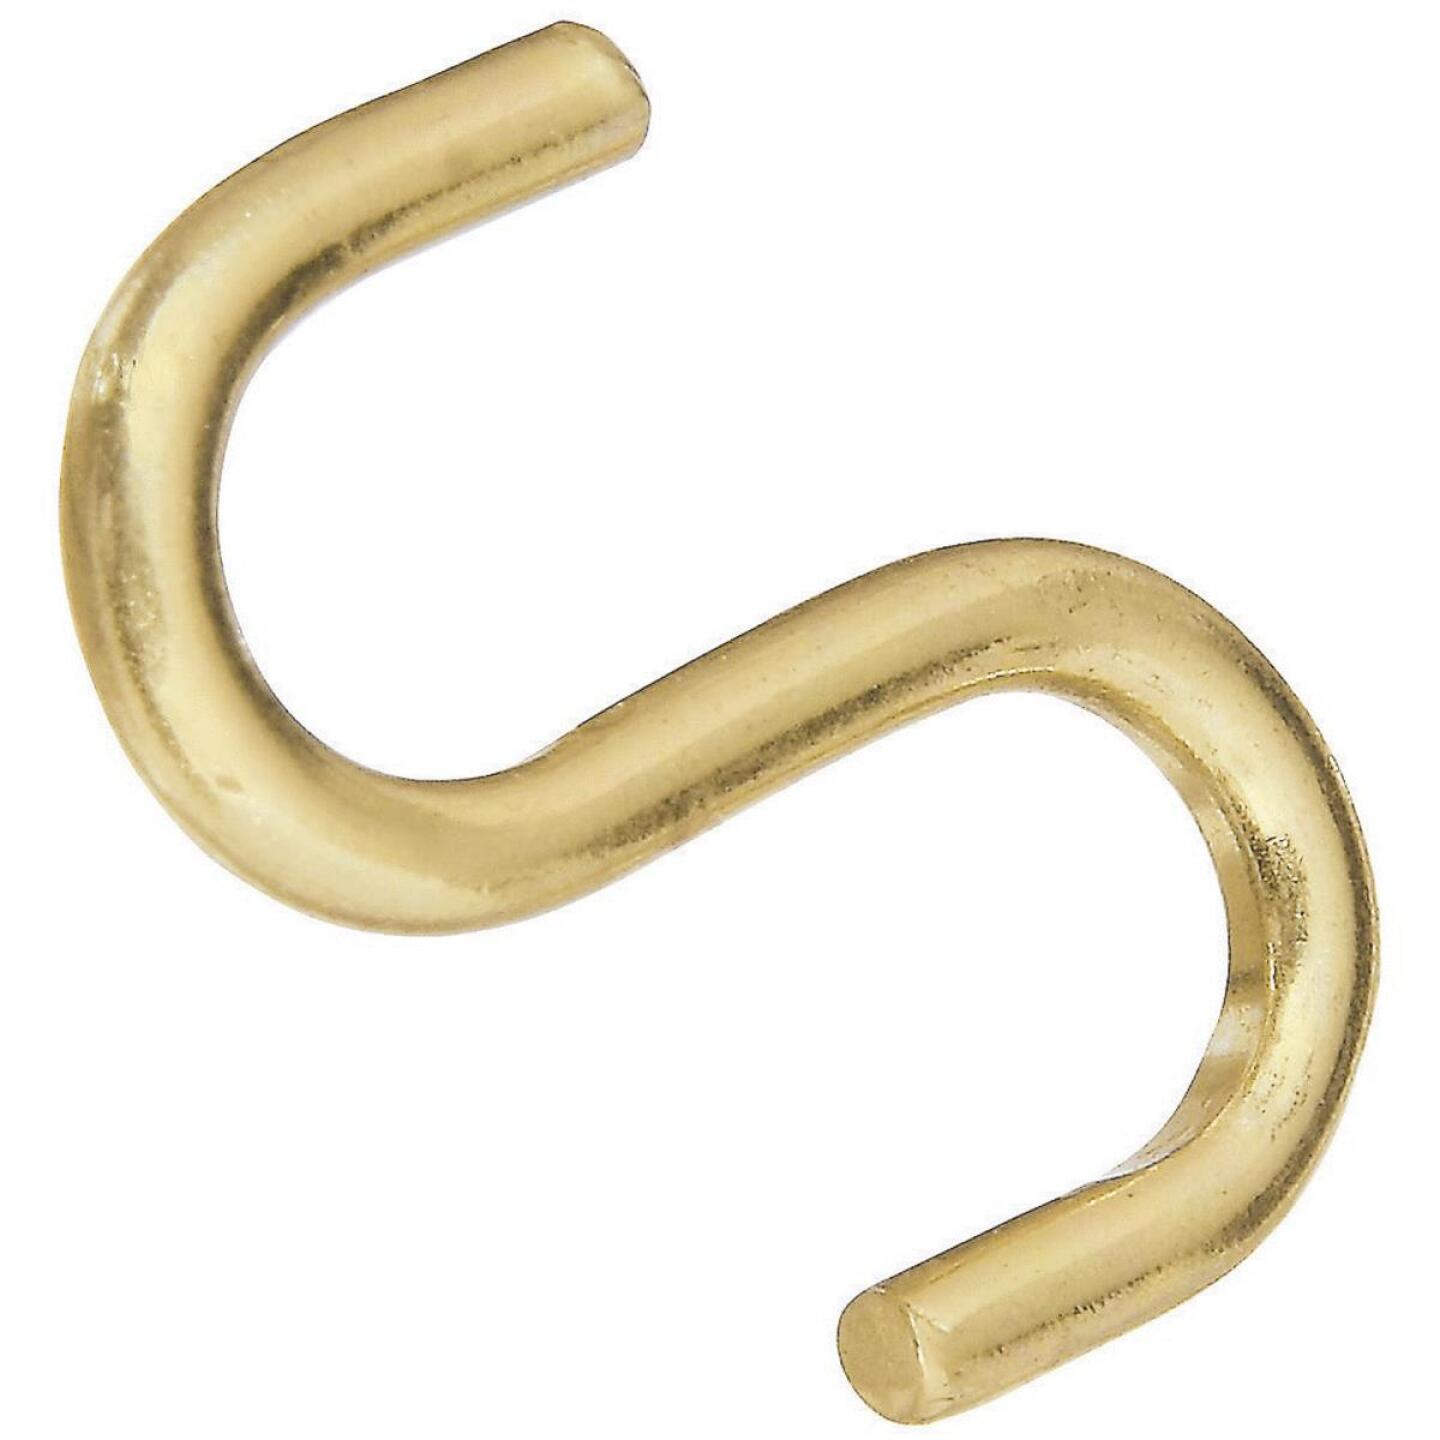 National 1 In. Brass Heavy Open S Hook (3 Ct.) Image 1